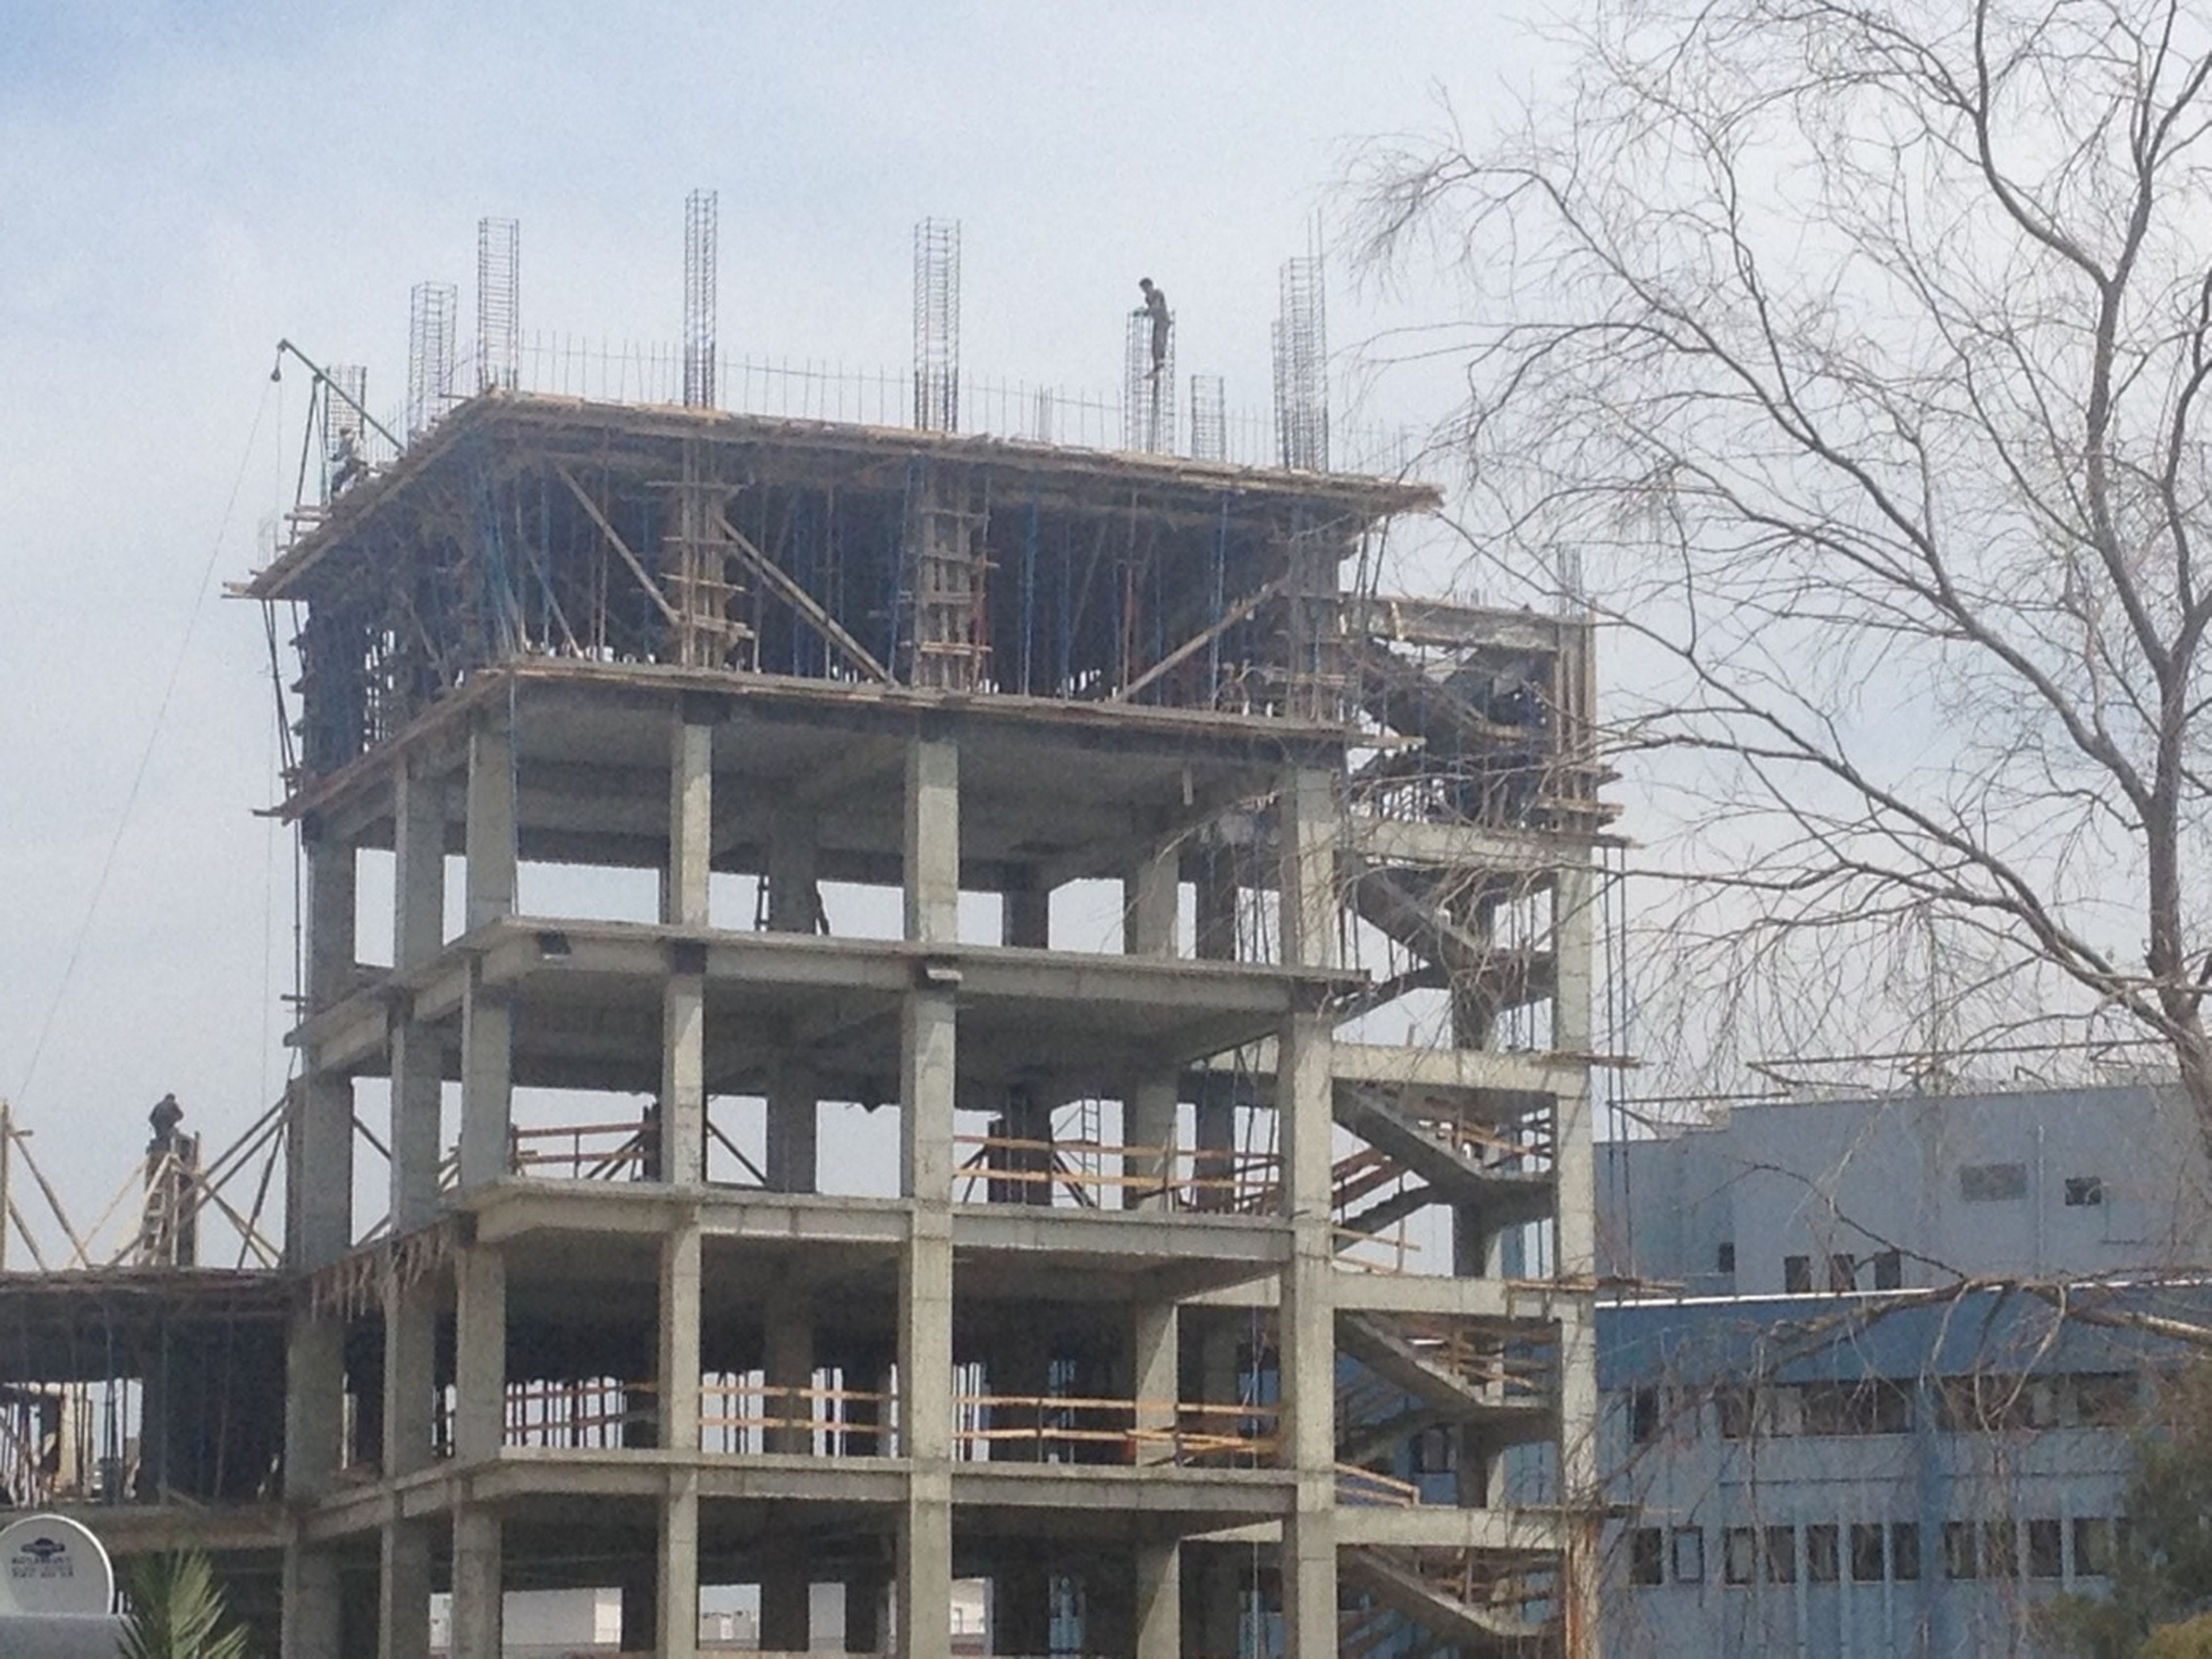 architecture, built structure, building exterior, construction site, low angle view, development, construction, industry, sky, crane - construction machinery, factory, building, incomplete, day, city, residential building, clear sky, outdoors, bare tree, no people